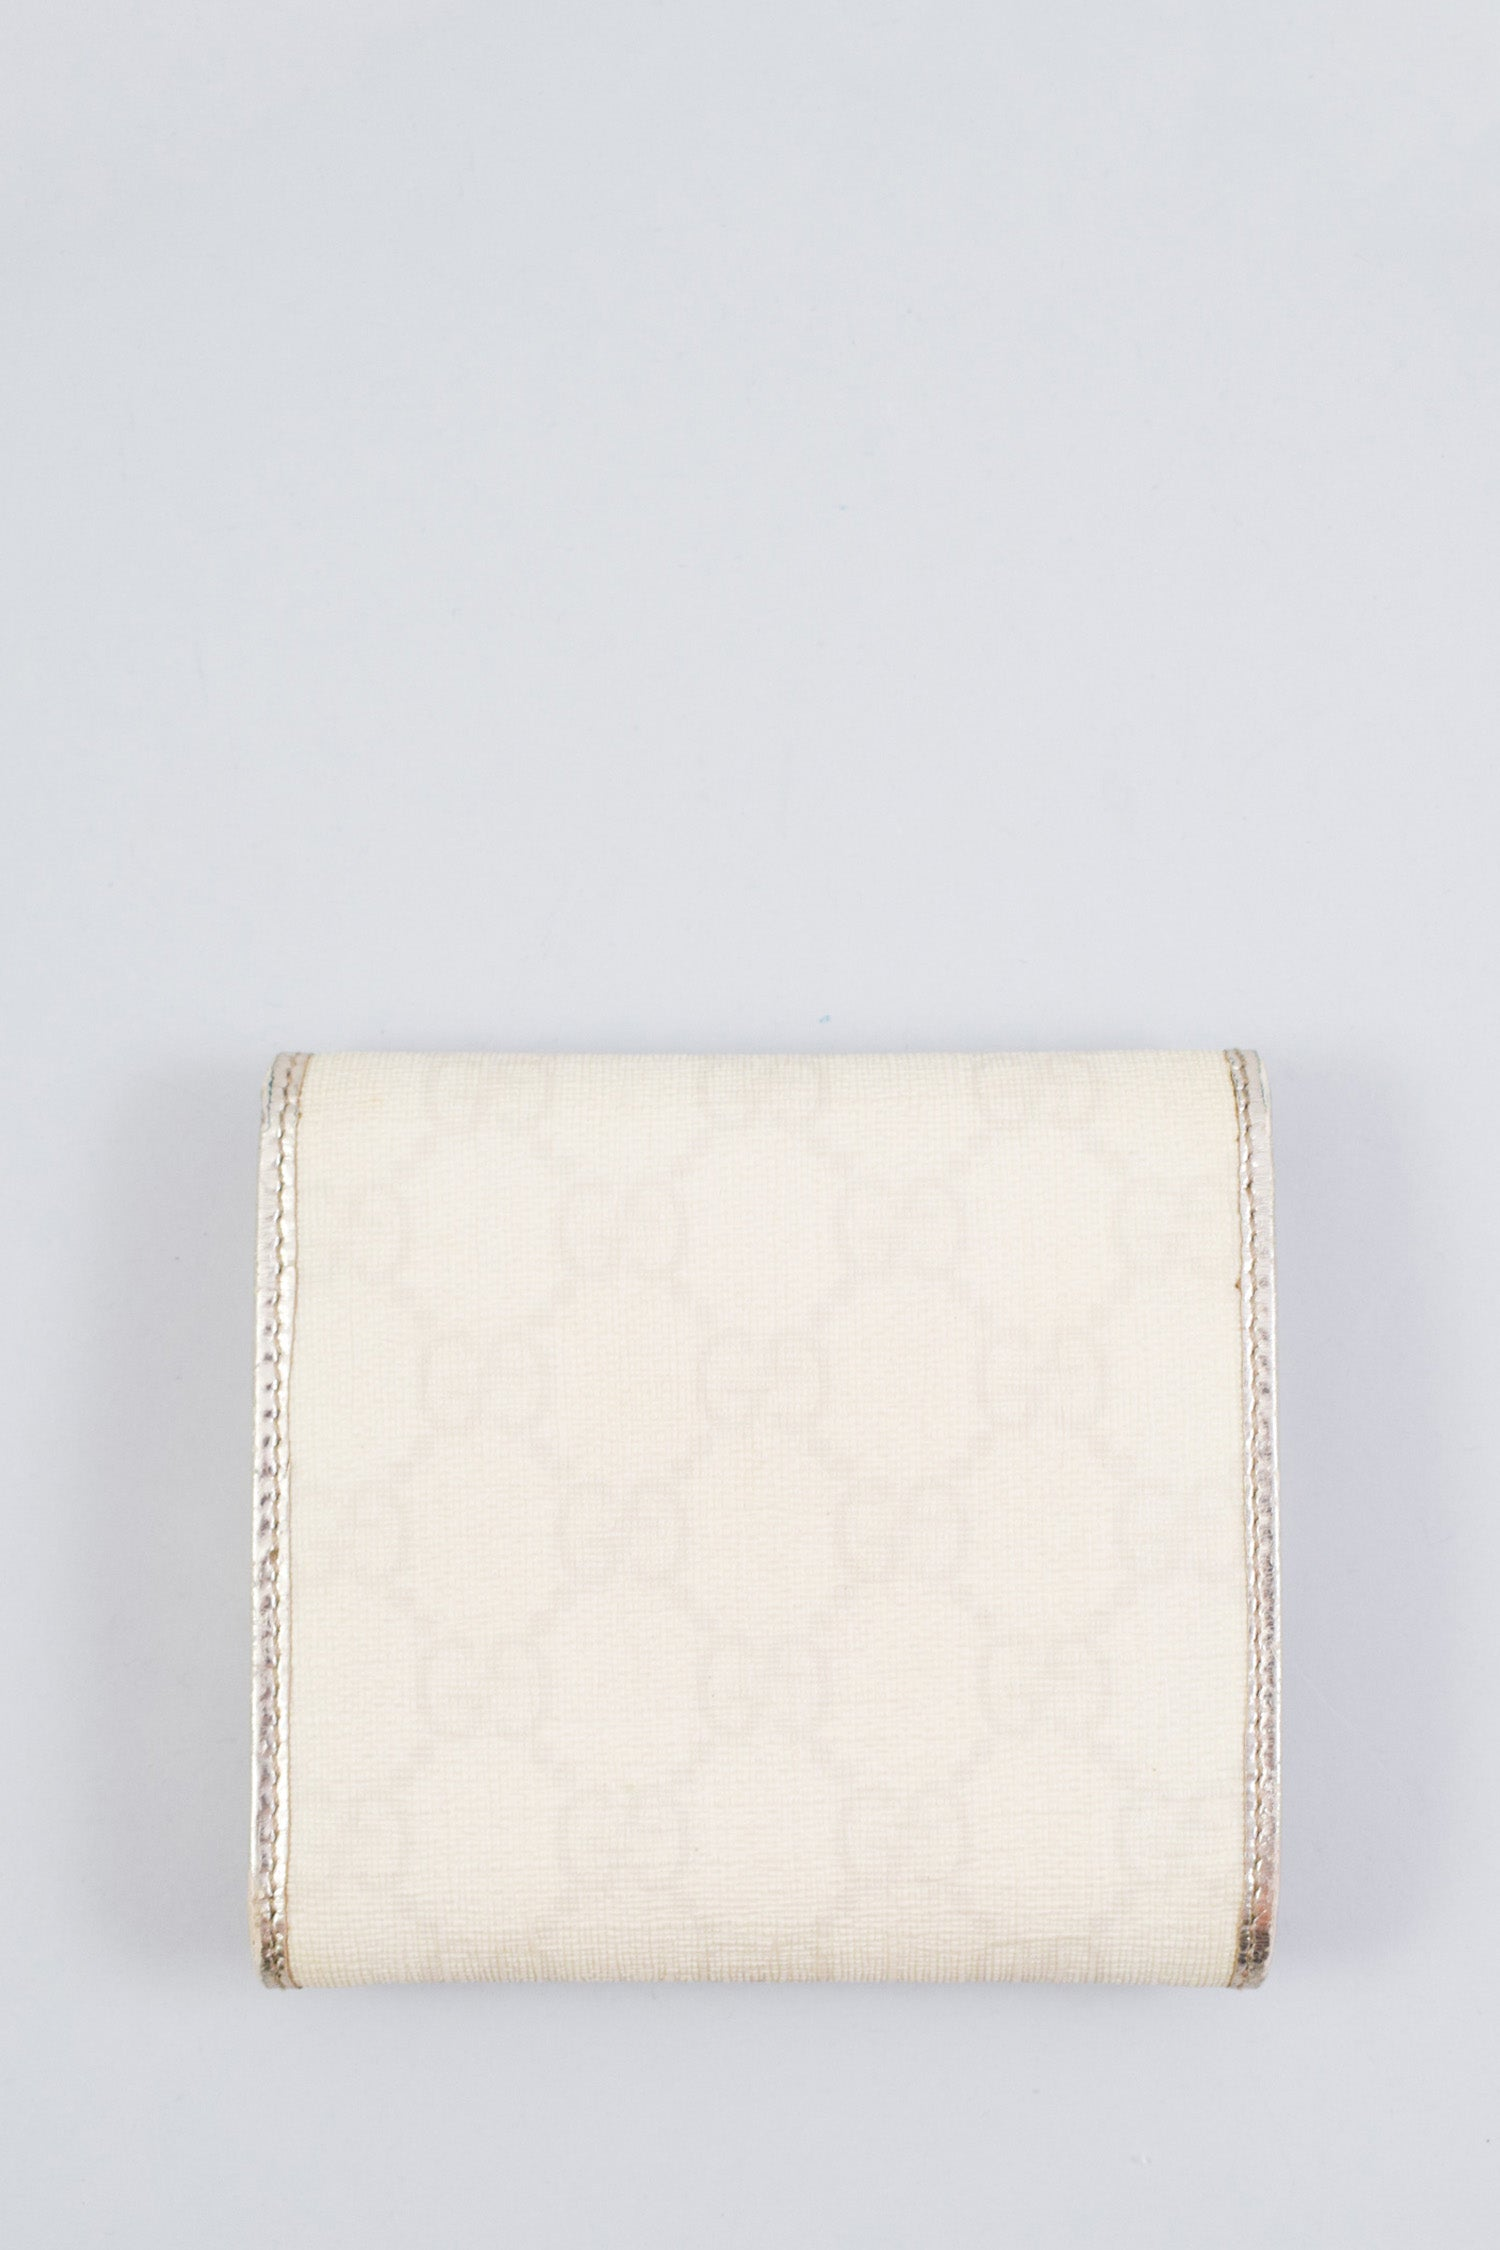 Gucci White Monogram Tri-Fold Wallet w/ Metallic Interior